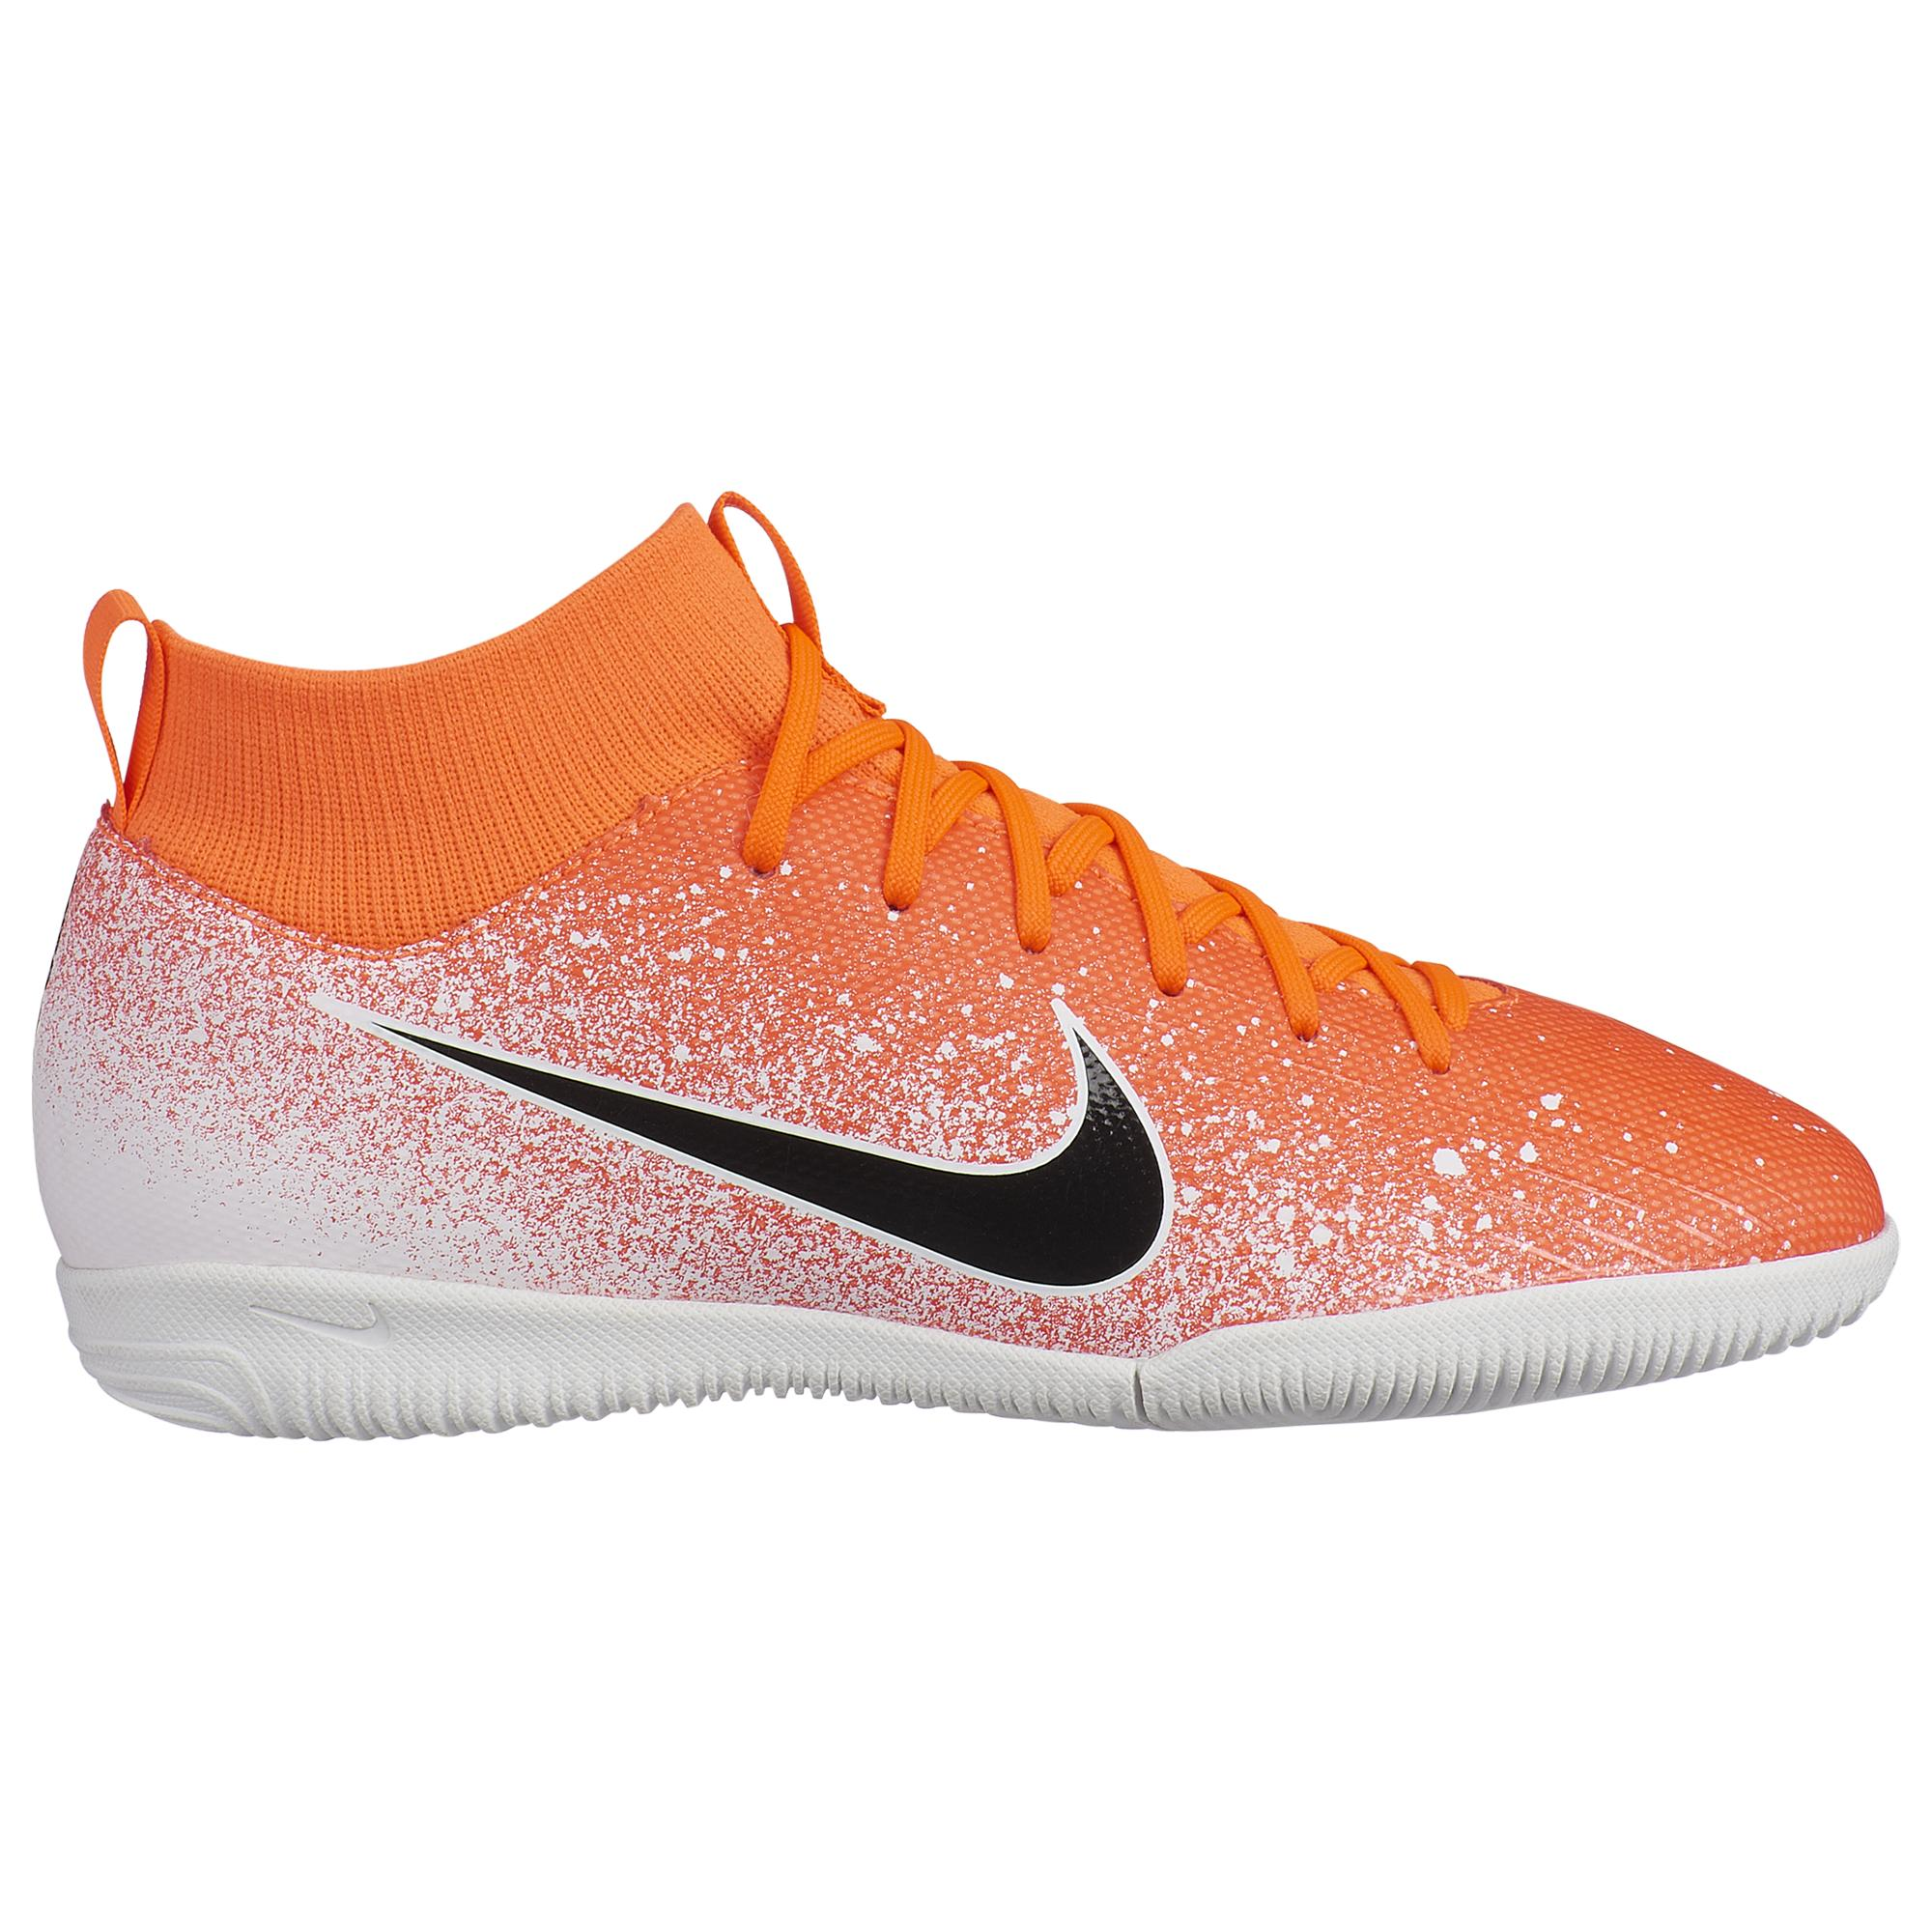 watch 9cd1e 84713 Men's Mercurial Superflyx 6 Academy Ic Soccer Shoes